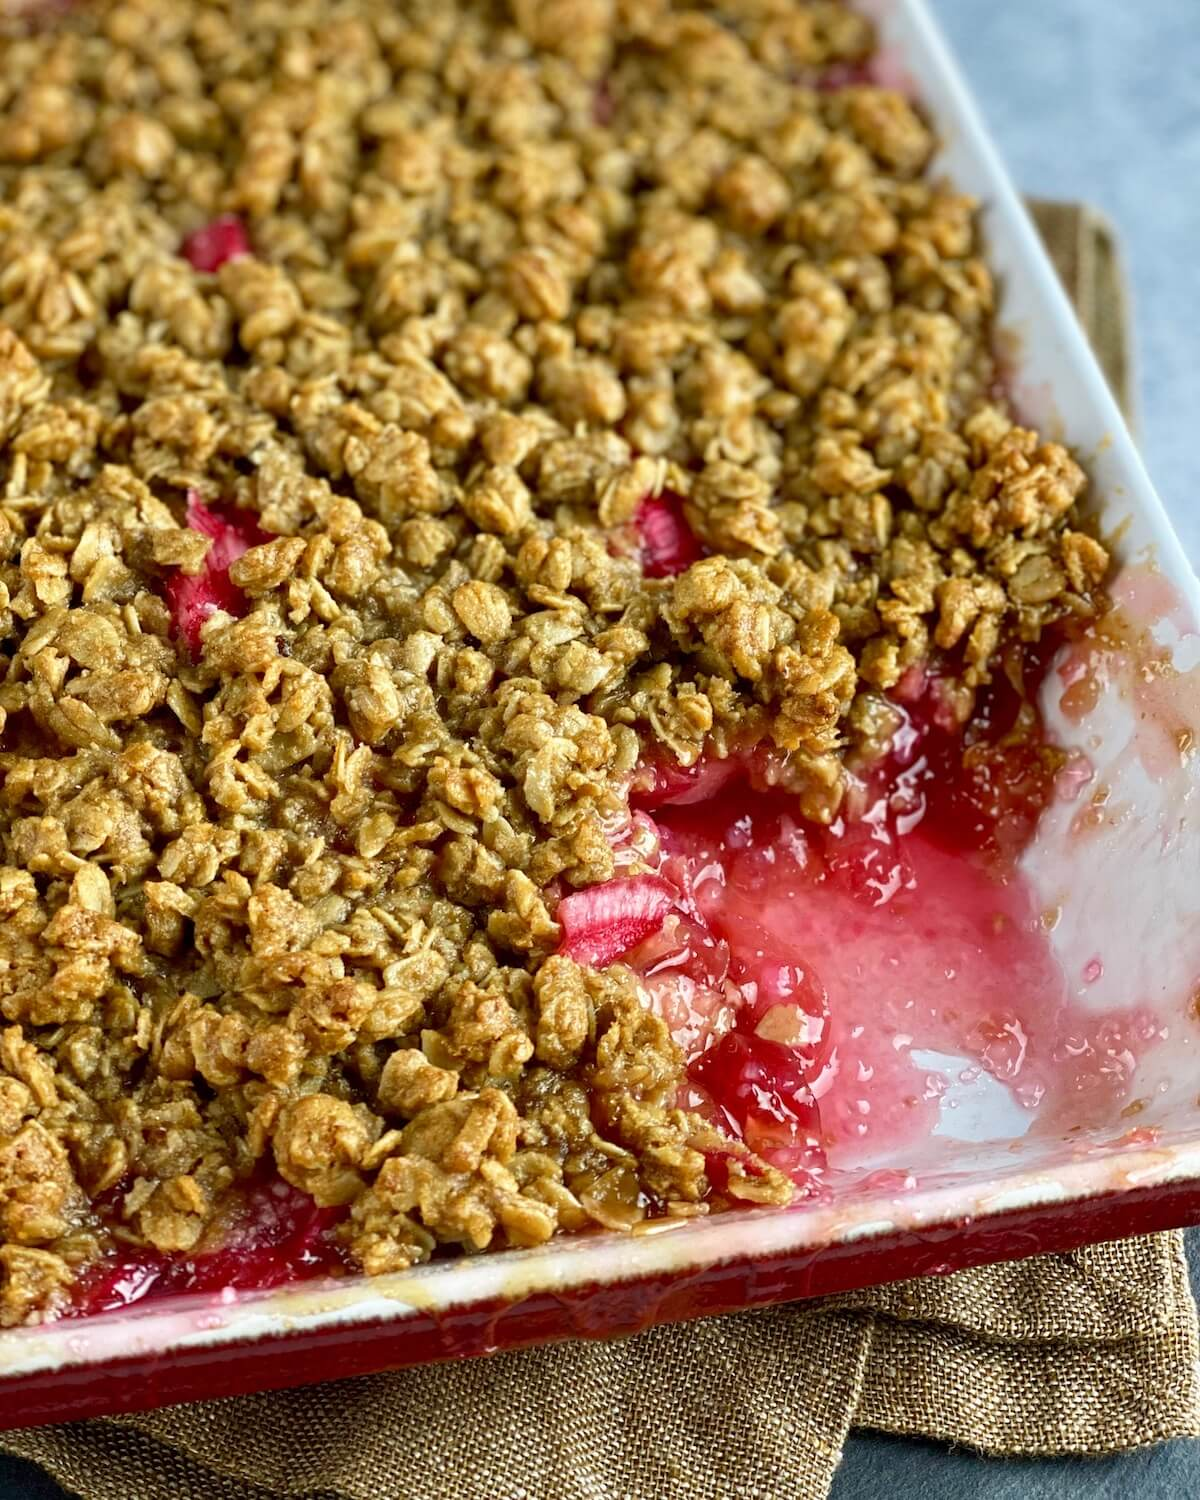 rhubarb with oat crisp scooped out of baking dish